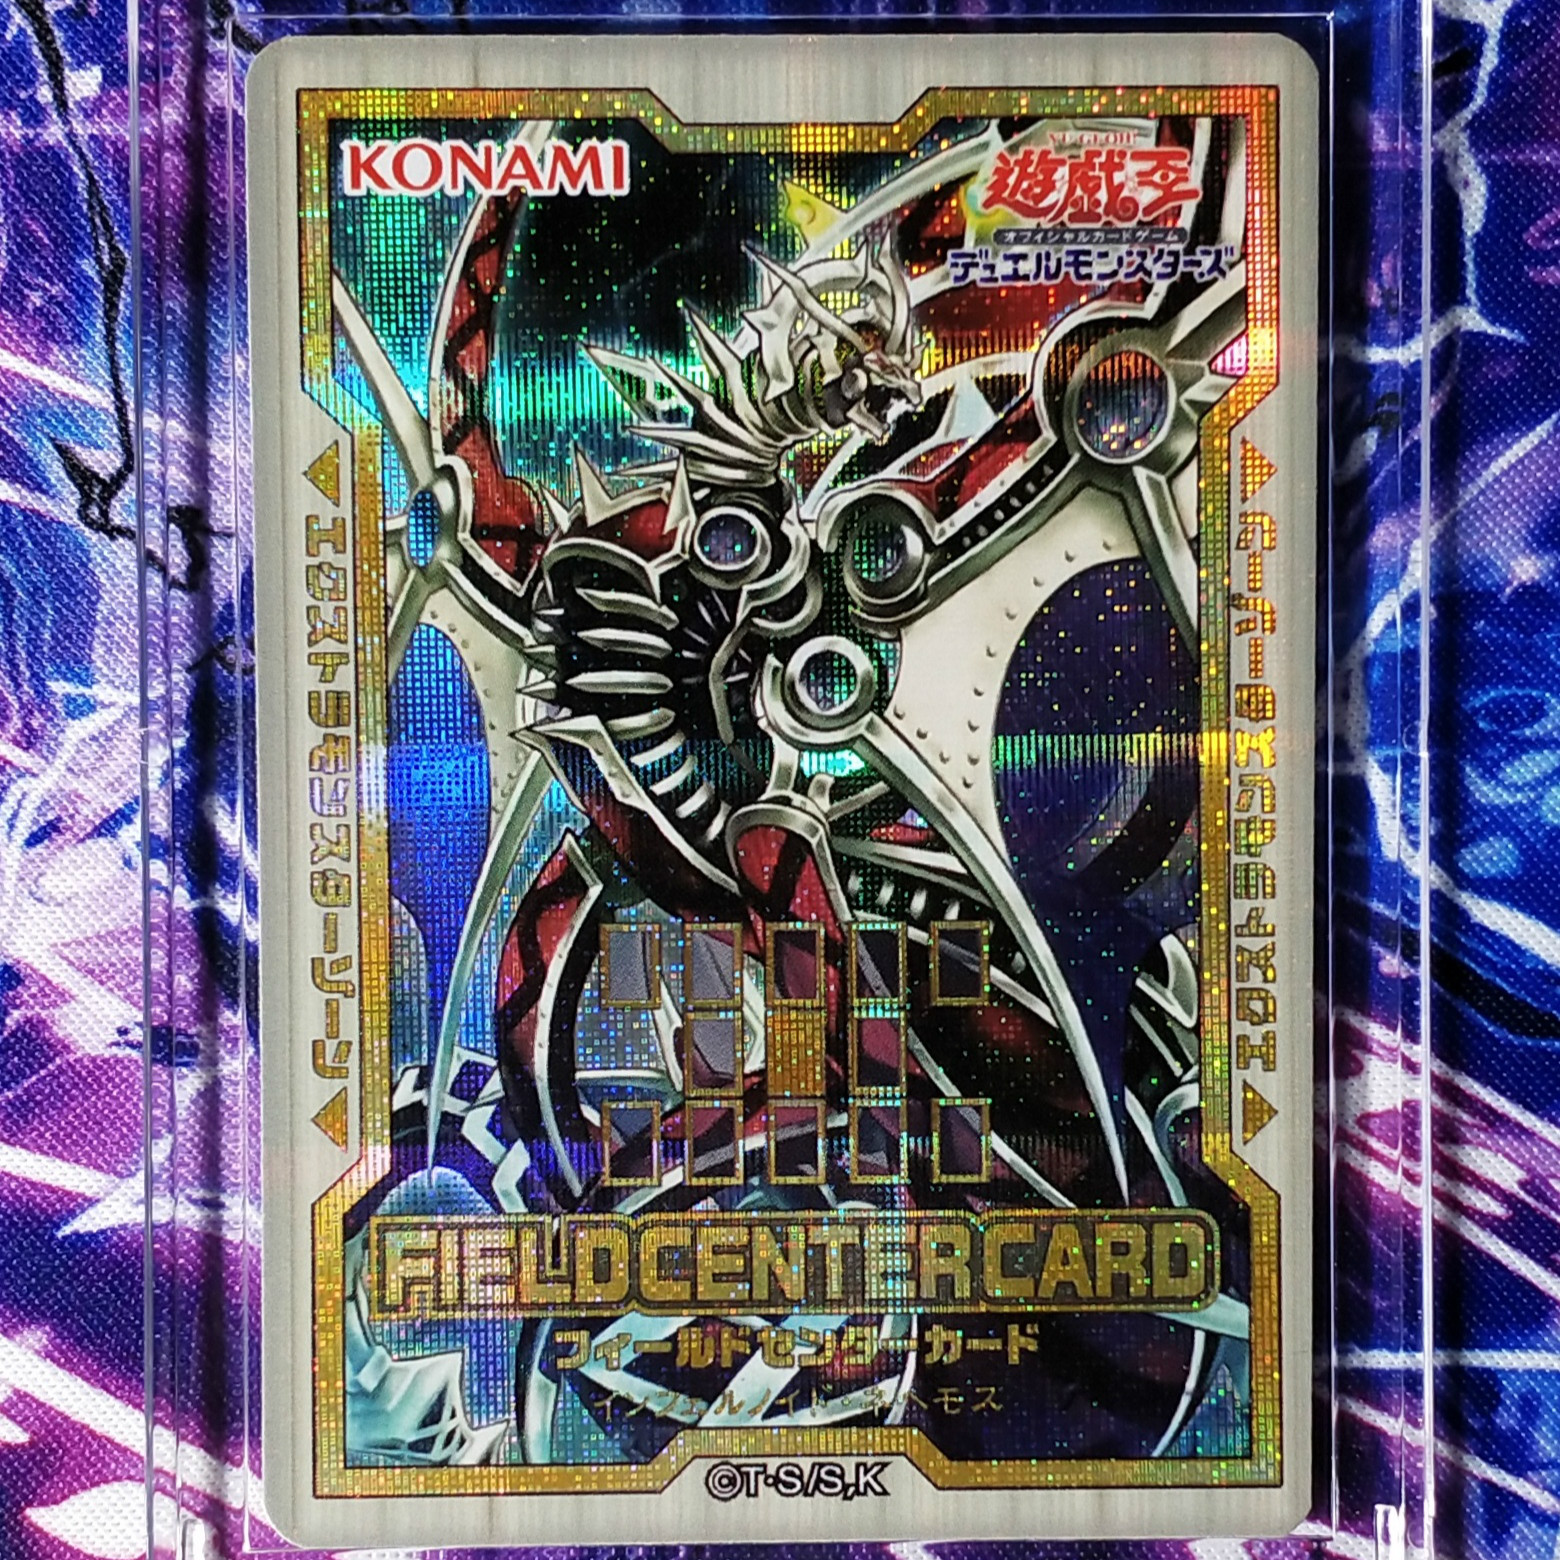 Yu Gi Oh DIY Infernoid Onuncu Colorful Toys Hobbies Hobby Collectibles Game Collection Anime Cards